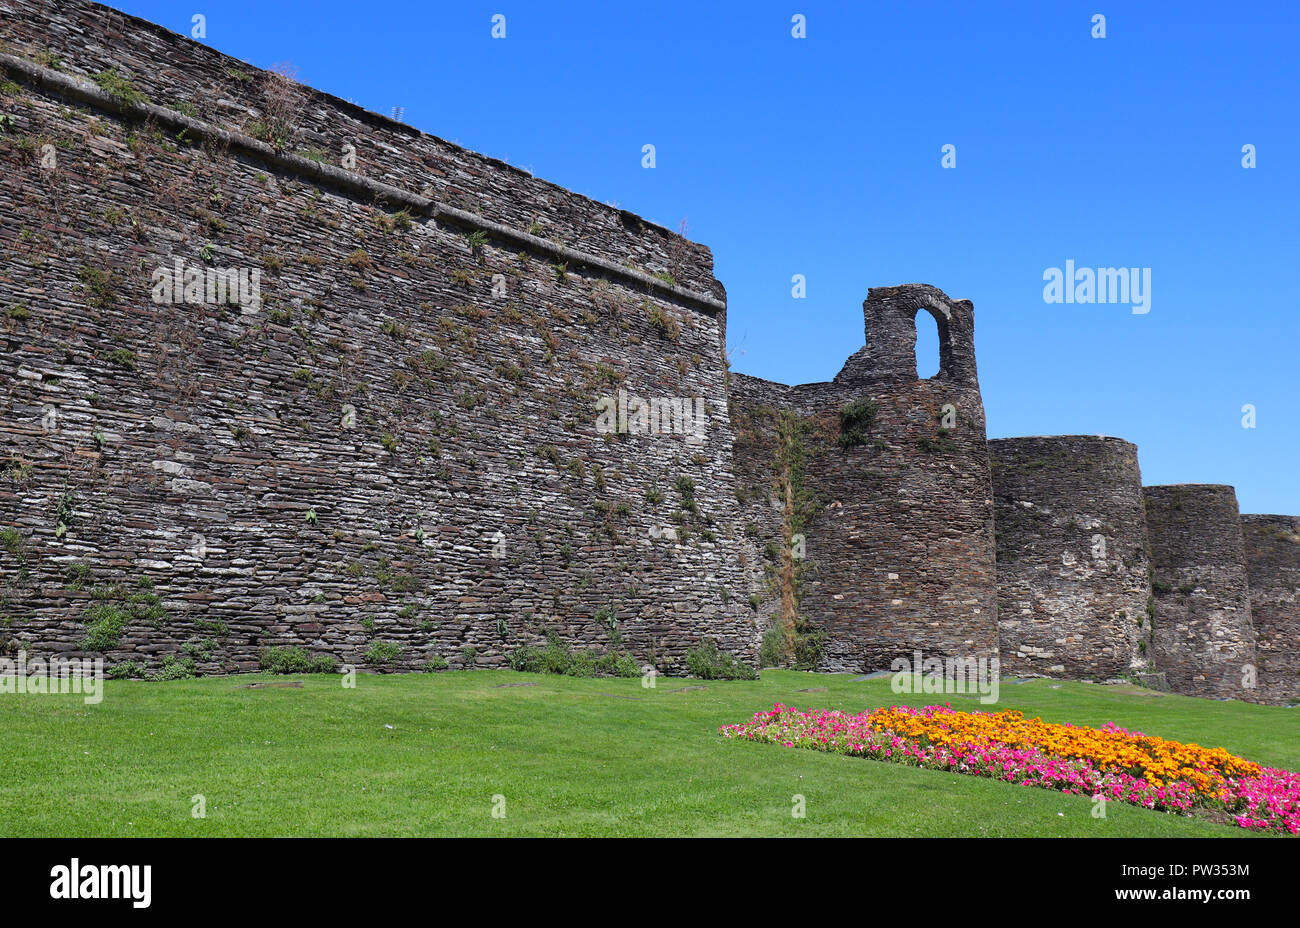 This Roman wall encircles the old town in Lugo, Northern Spain. The wall is around 3kms in circumference and very high in places. - Stock Image